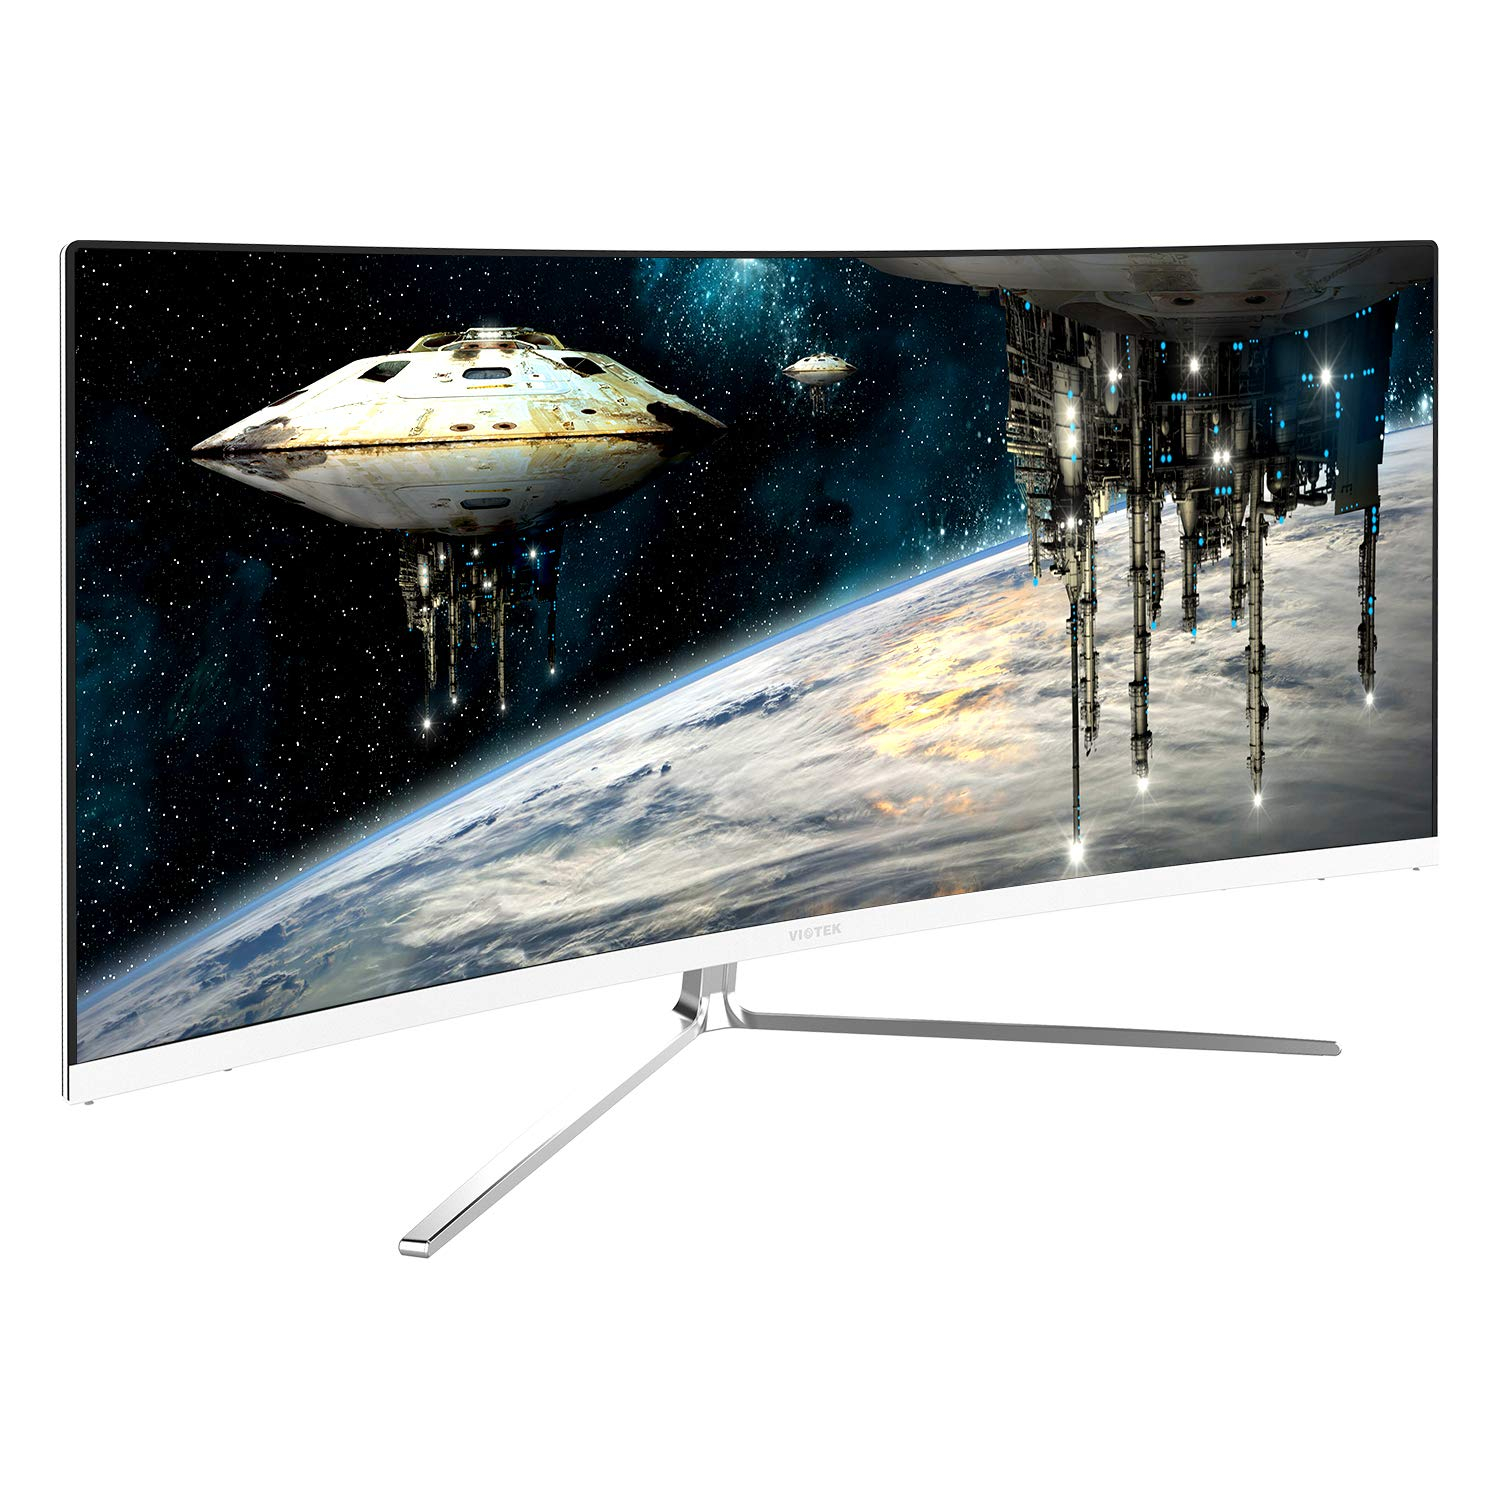 Viotek GN34CW 34-Inch 21:9 Ultrawide Curved QHD Gaming and Professional Computer Monitor, 100Hz 1440p, FreeSync FTS/RTS VESA (White)